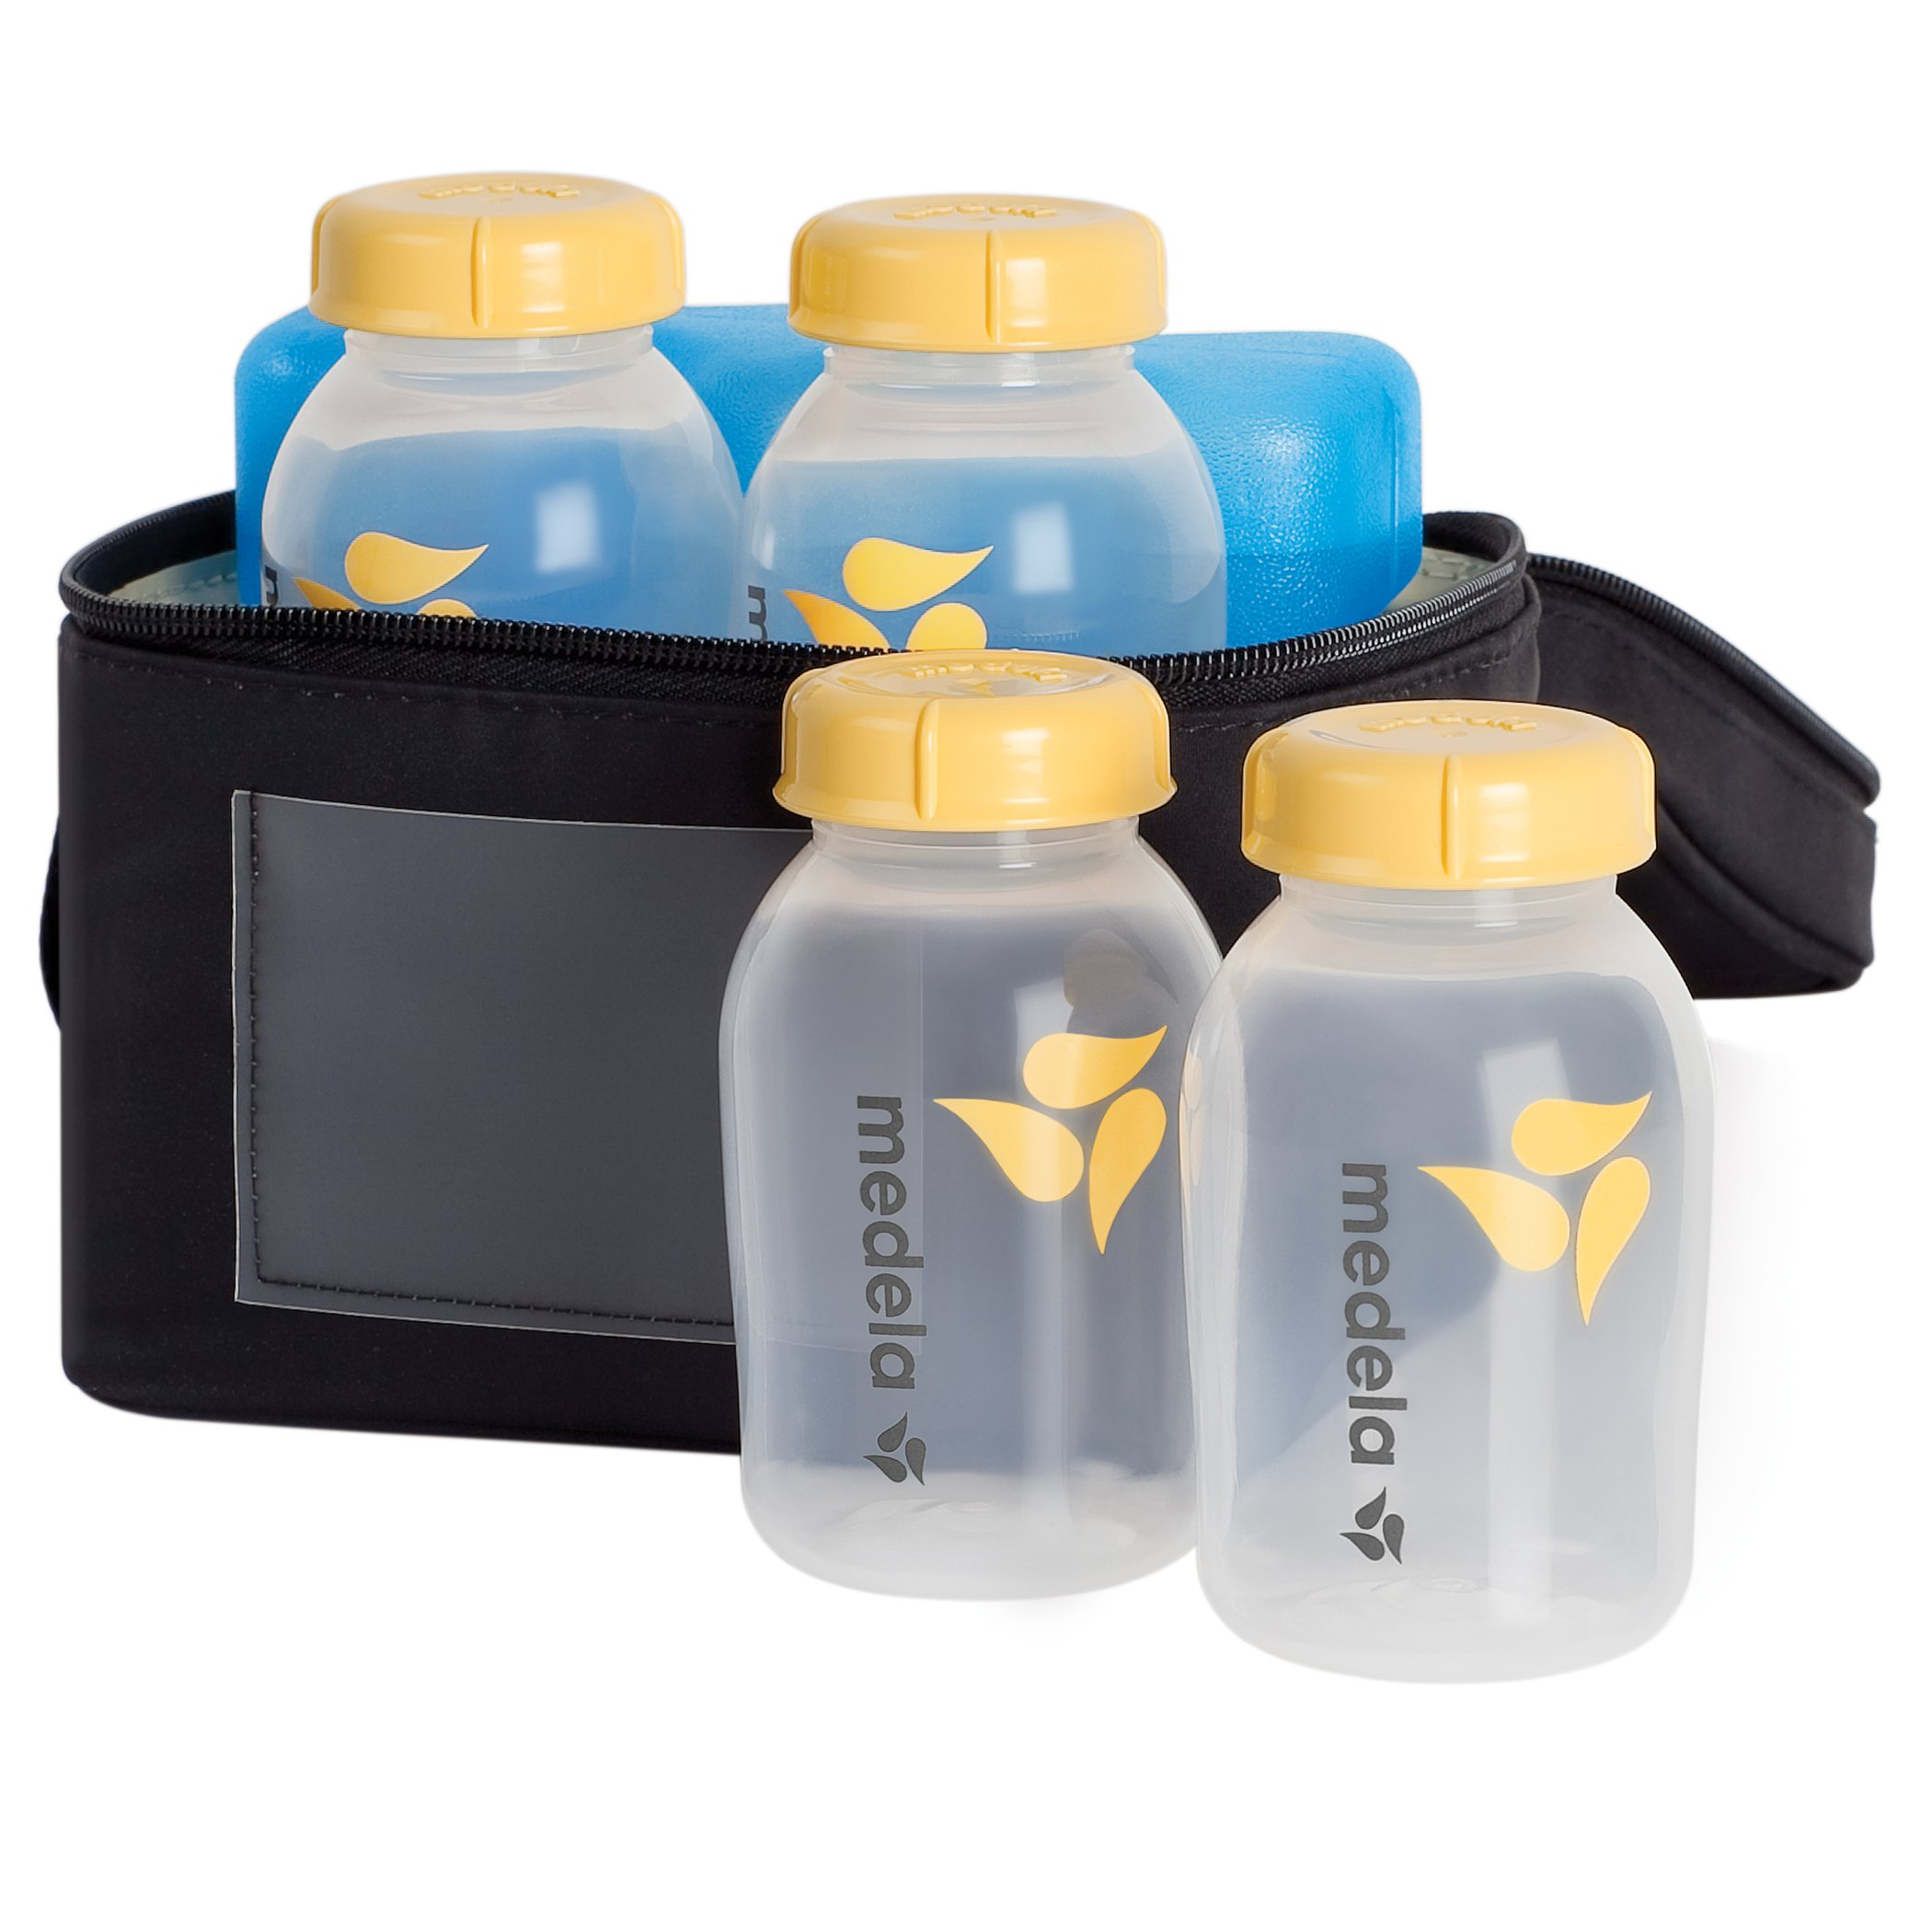 Medela Breast Milk Cooler Set